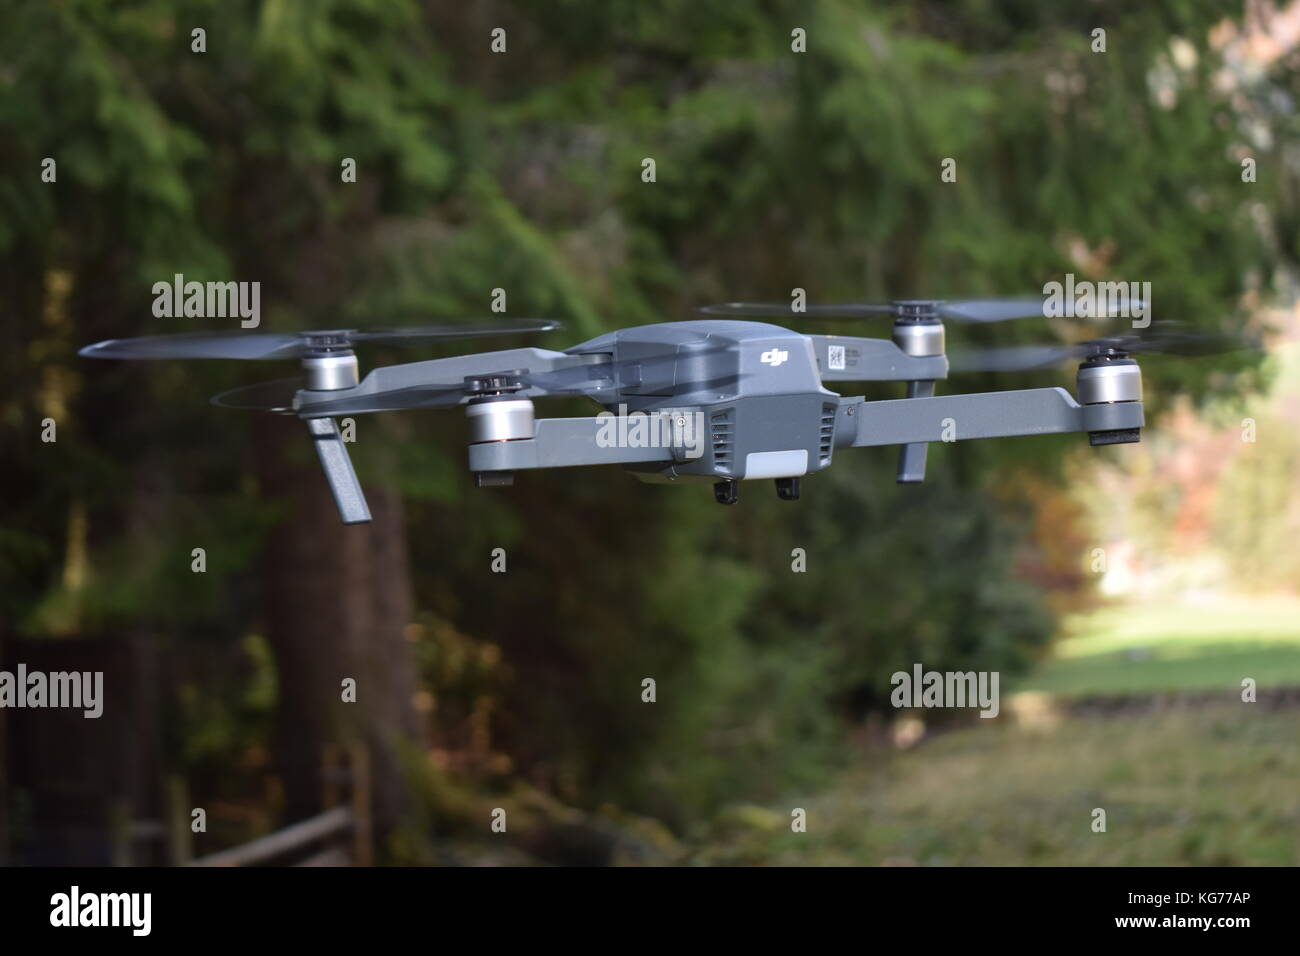 DJI Mavic Drone at flight - Stock Image